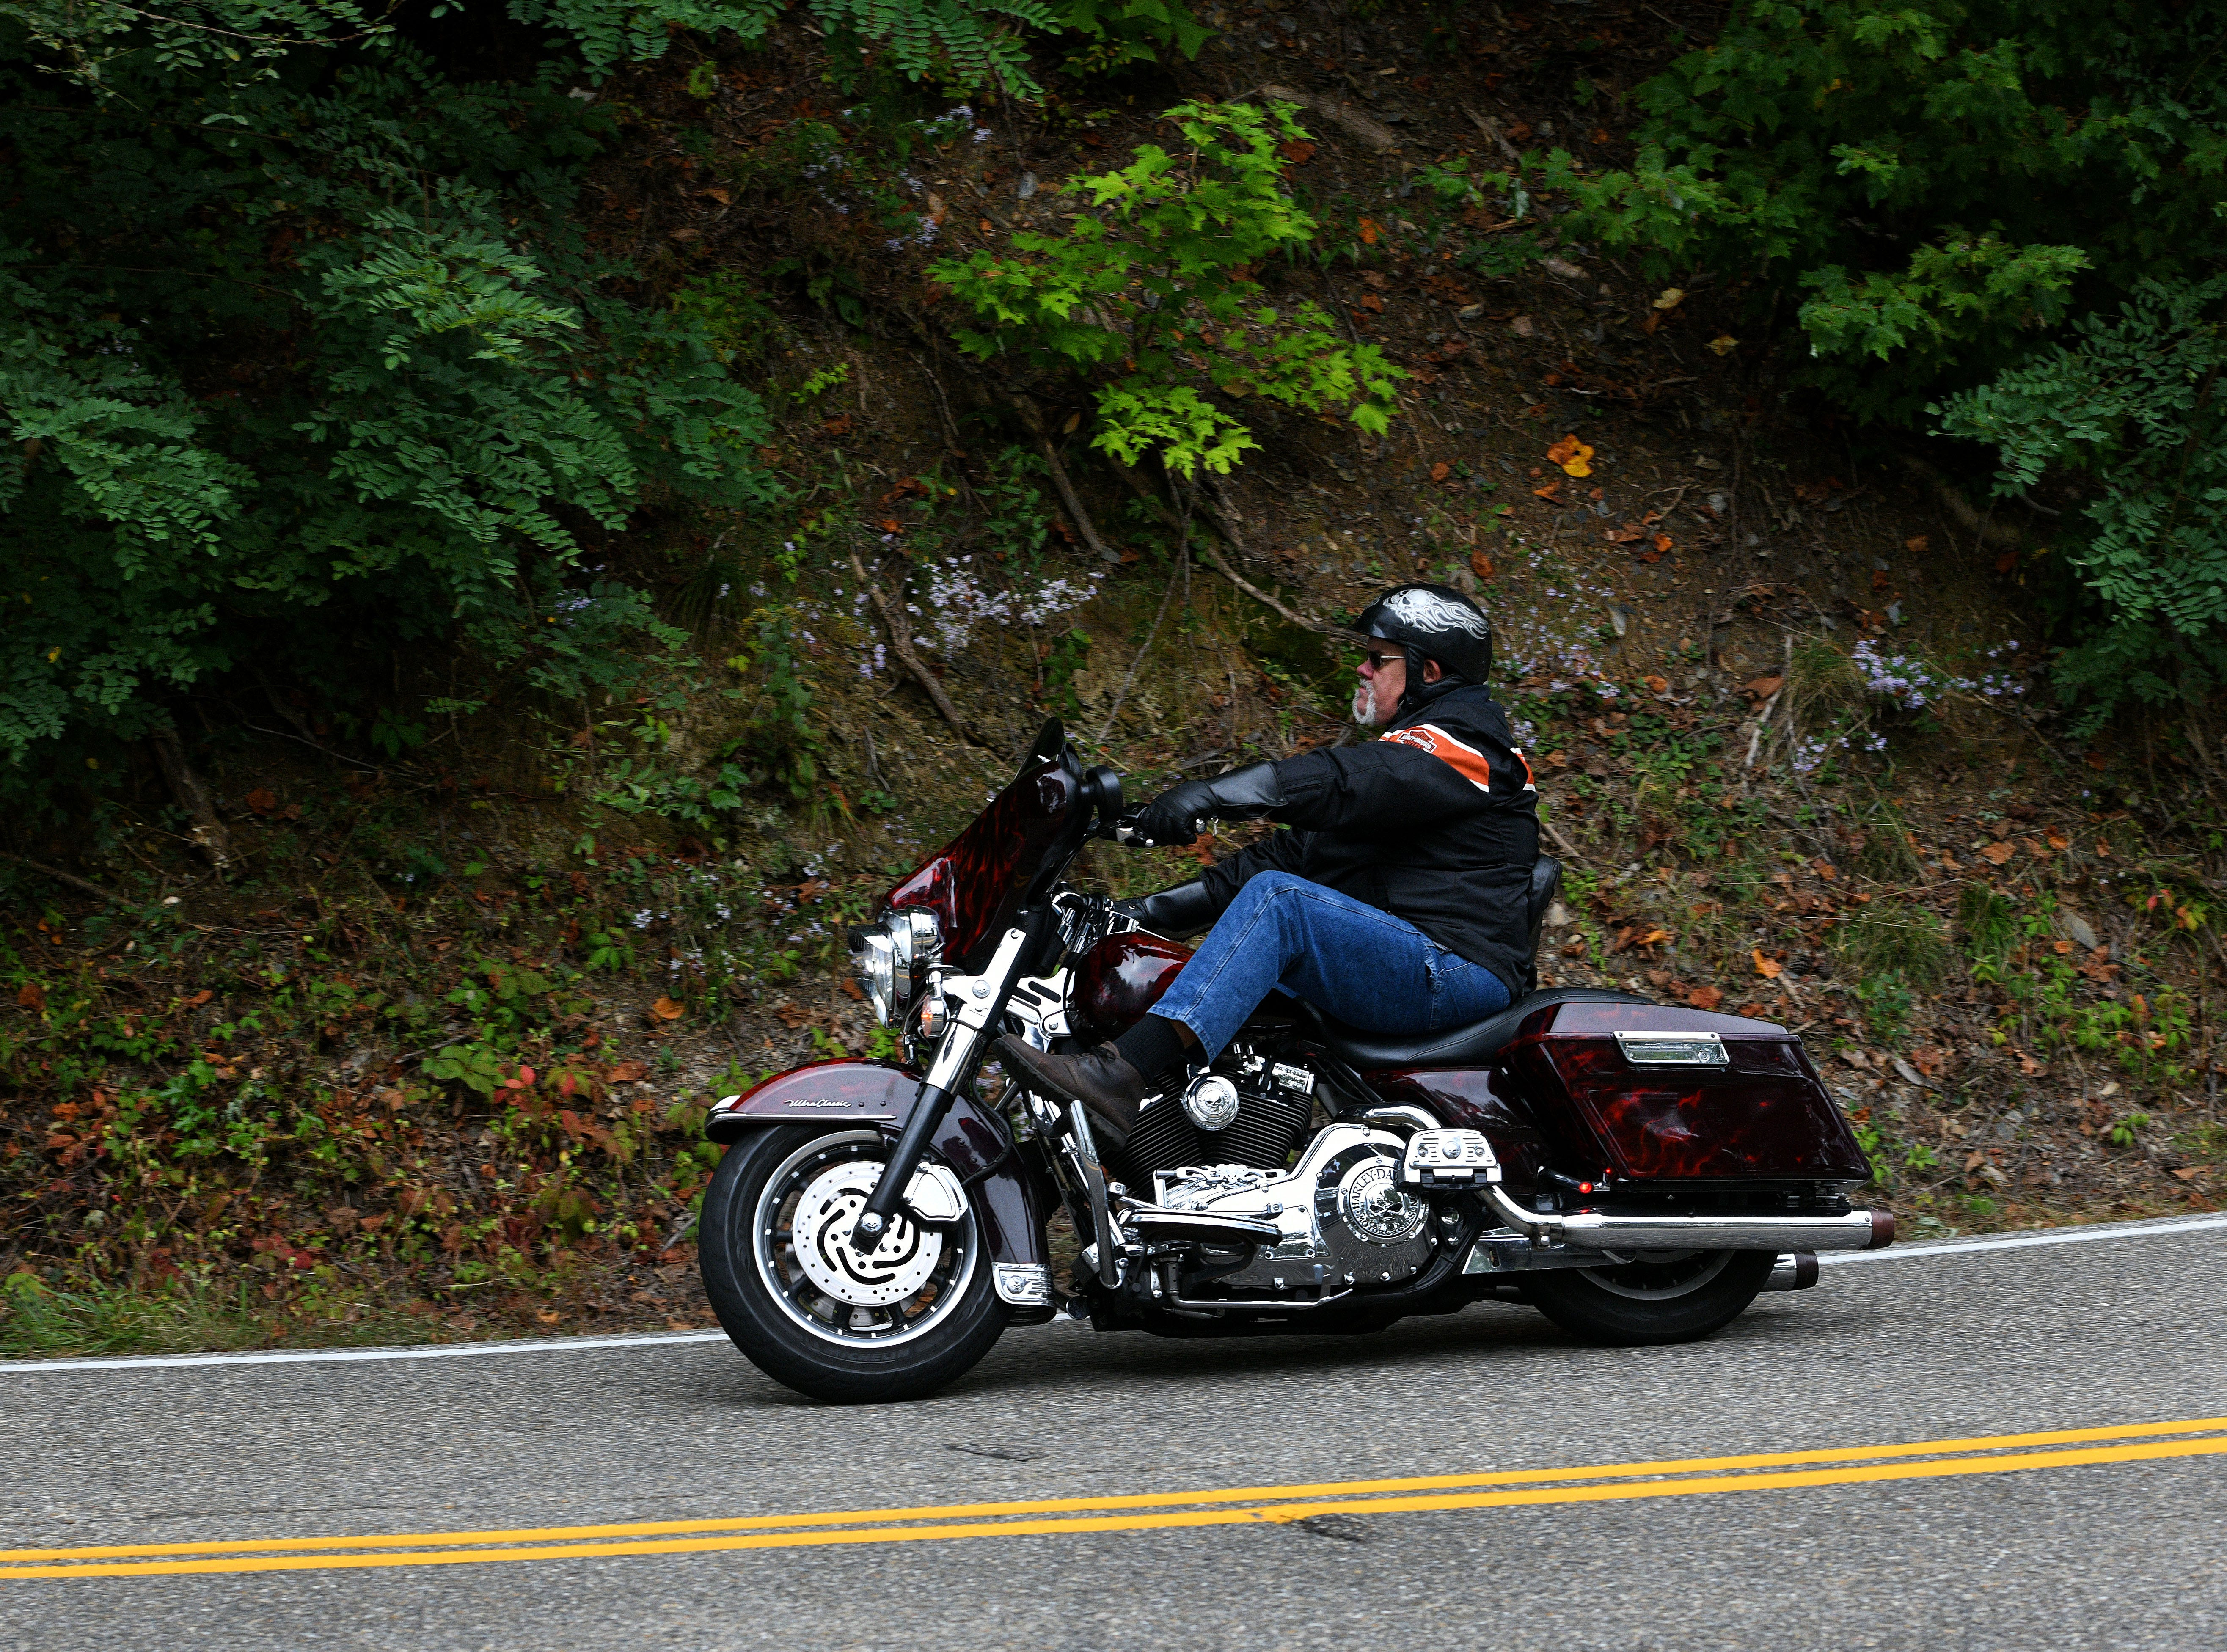 The Dragon is a section of US129 in Tennessee and North Carolina famous for it's 318 curves in 11 miles  Saturday, Oct. 13, 2018. Tourist, motorcycle riders, and car drivers from the area and all over the world take the challenge of the Dragon each year. From Tennessee the Dragon winds its way through the  mountains ending just past the TN/NC state line at Deals Gap.